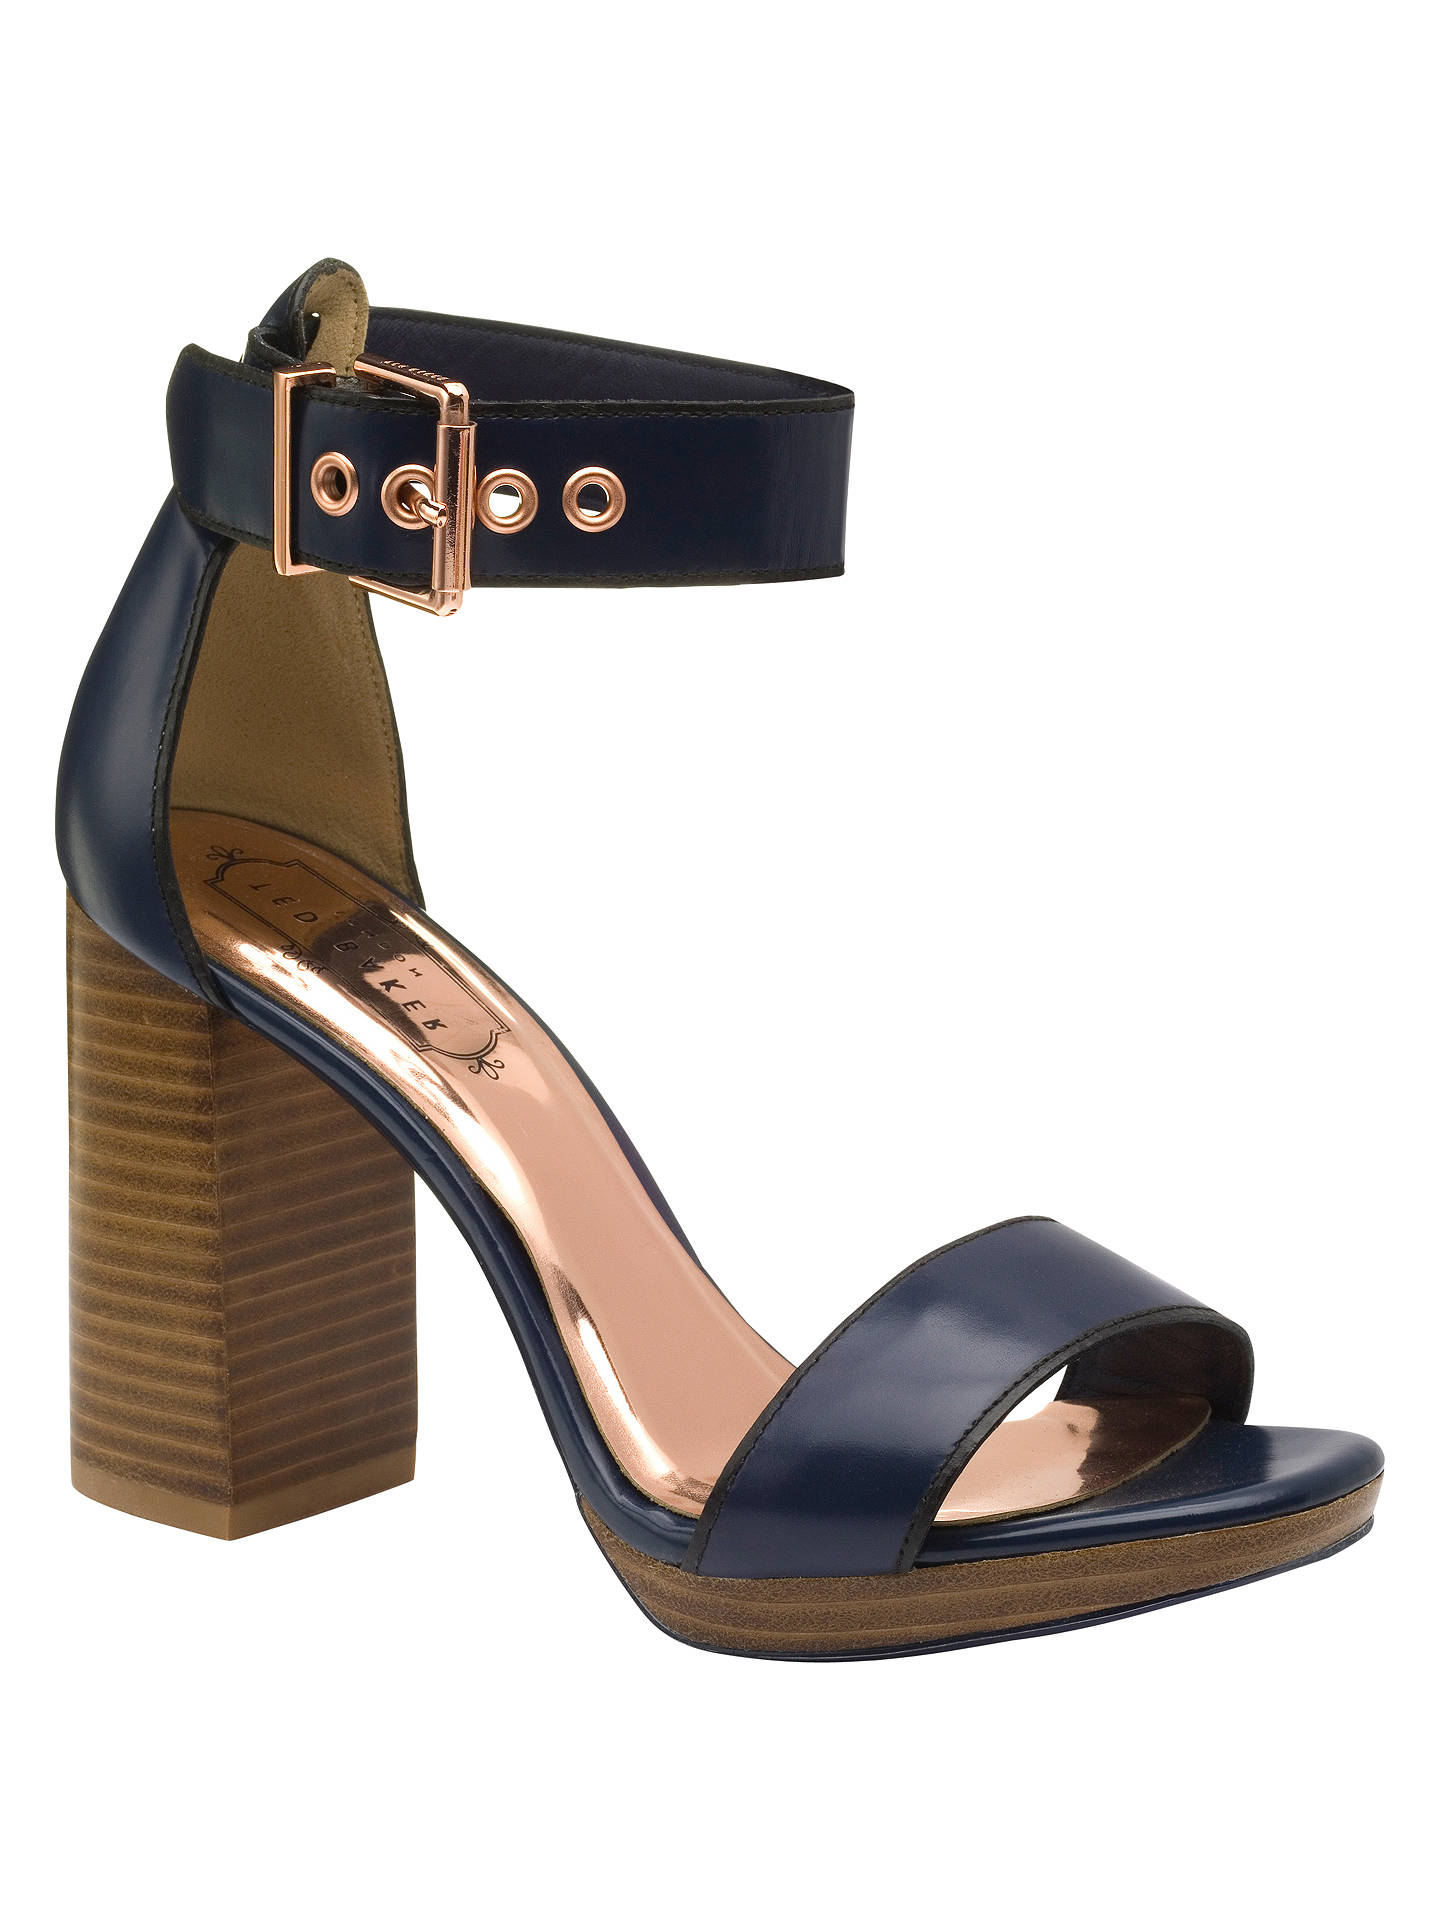 95563380f6e3 Ted Baker Lorno Block Heeled Sandals at John Lewis   Partners